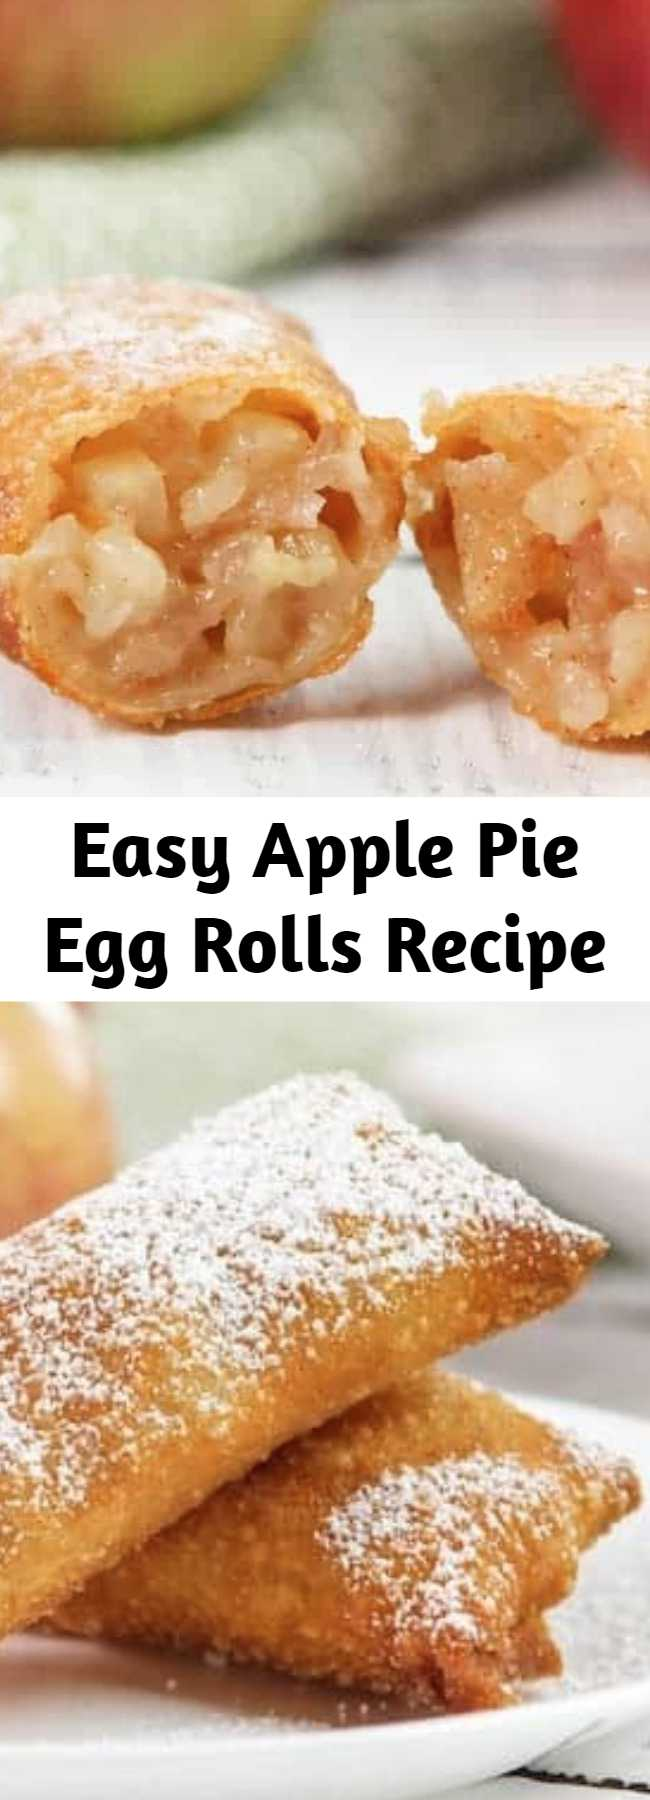 Easy Apple Pie Egg Rolls Recipe - These yummy little bundles are filled with a simple homemade cinnamon apple filling, deep fried golden brown and kissed with cinnamon.